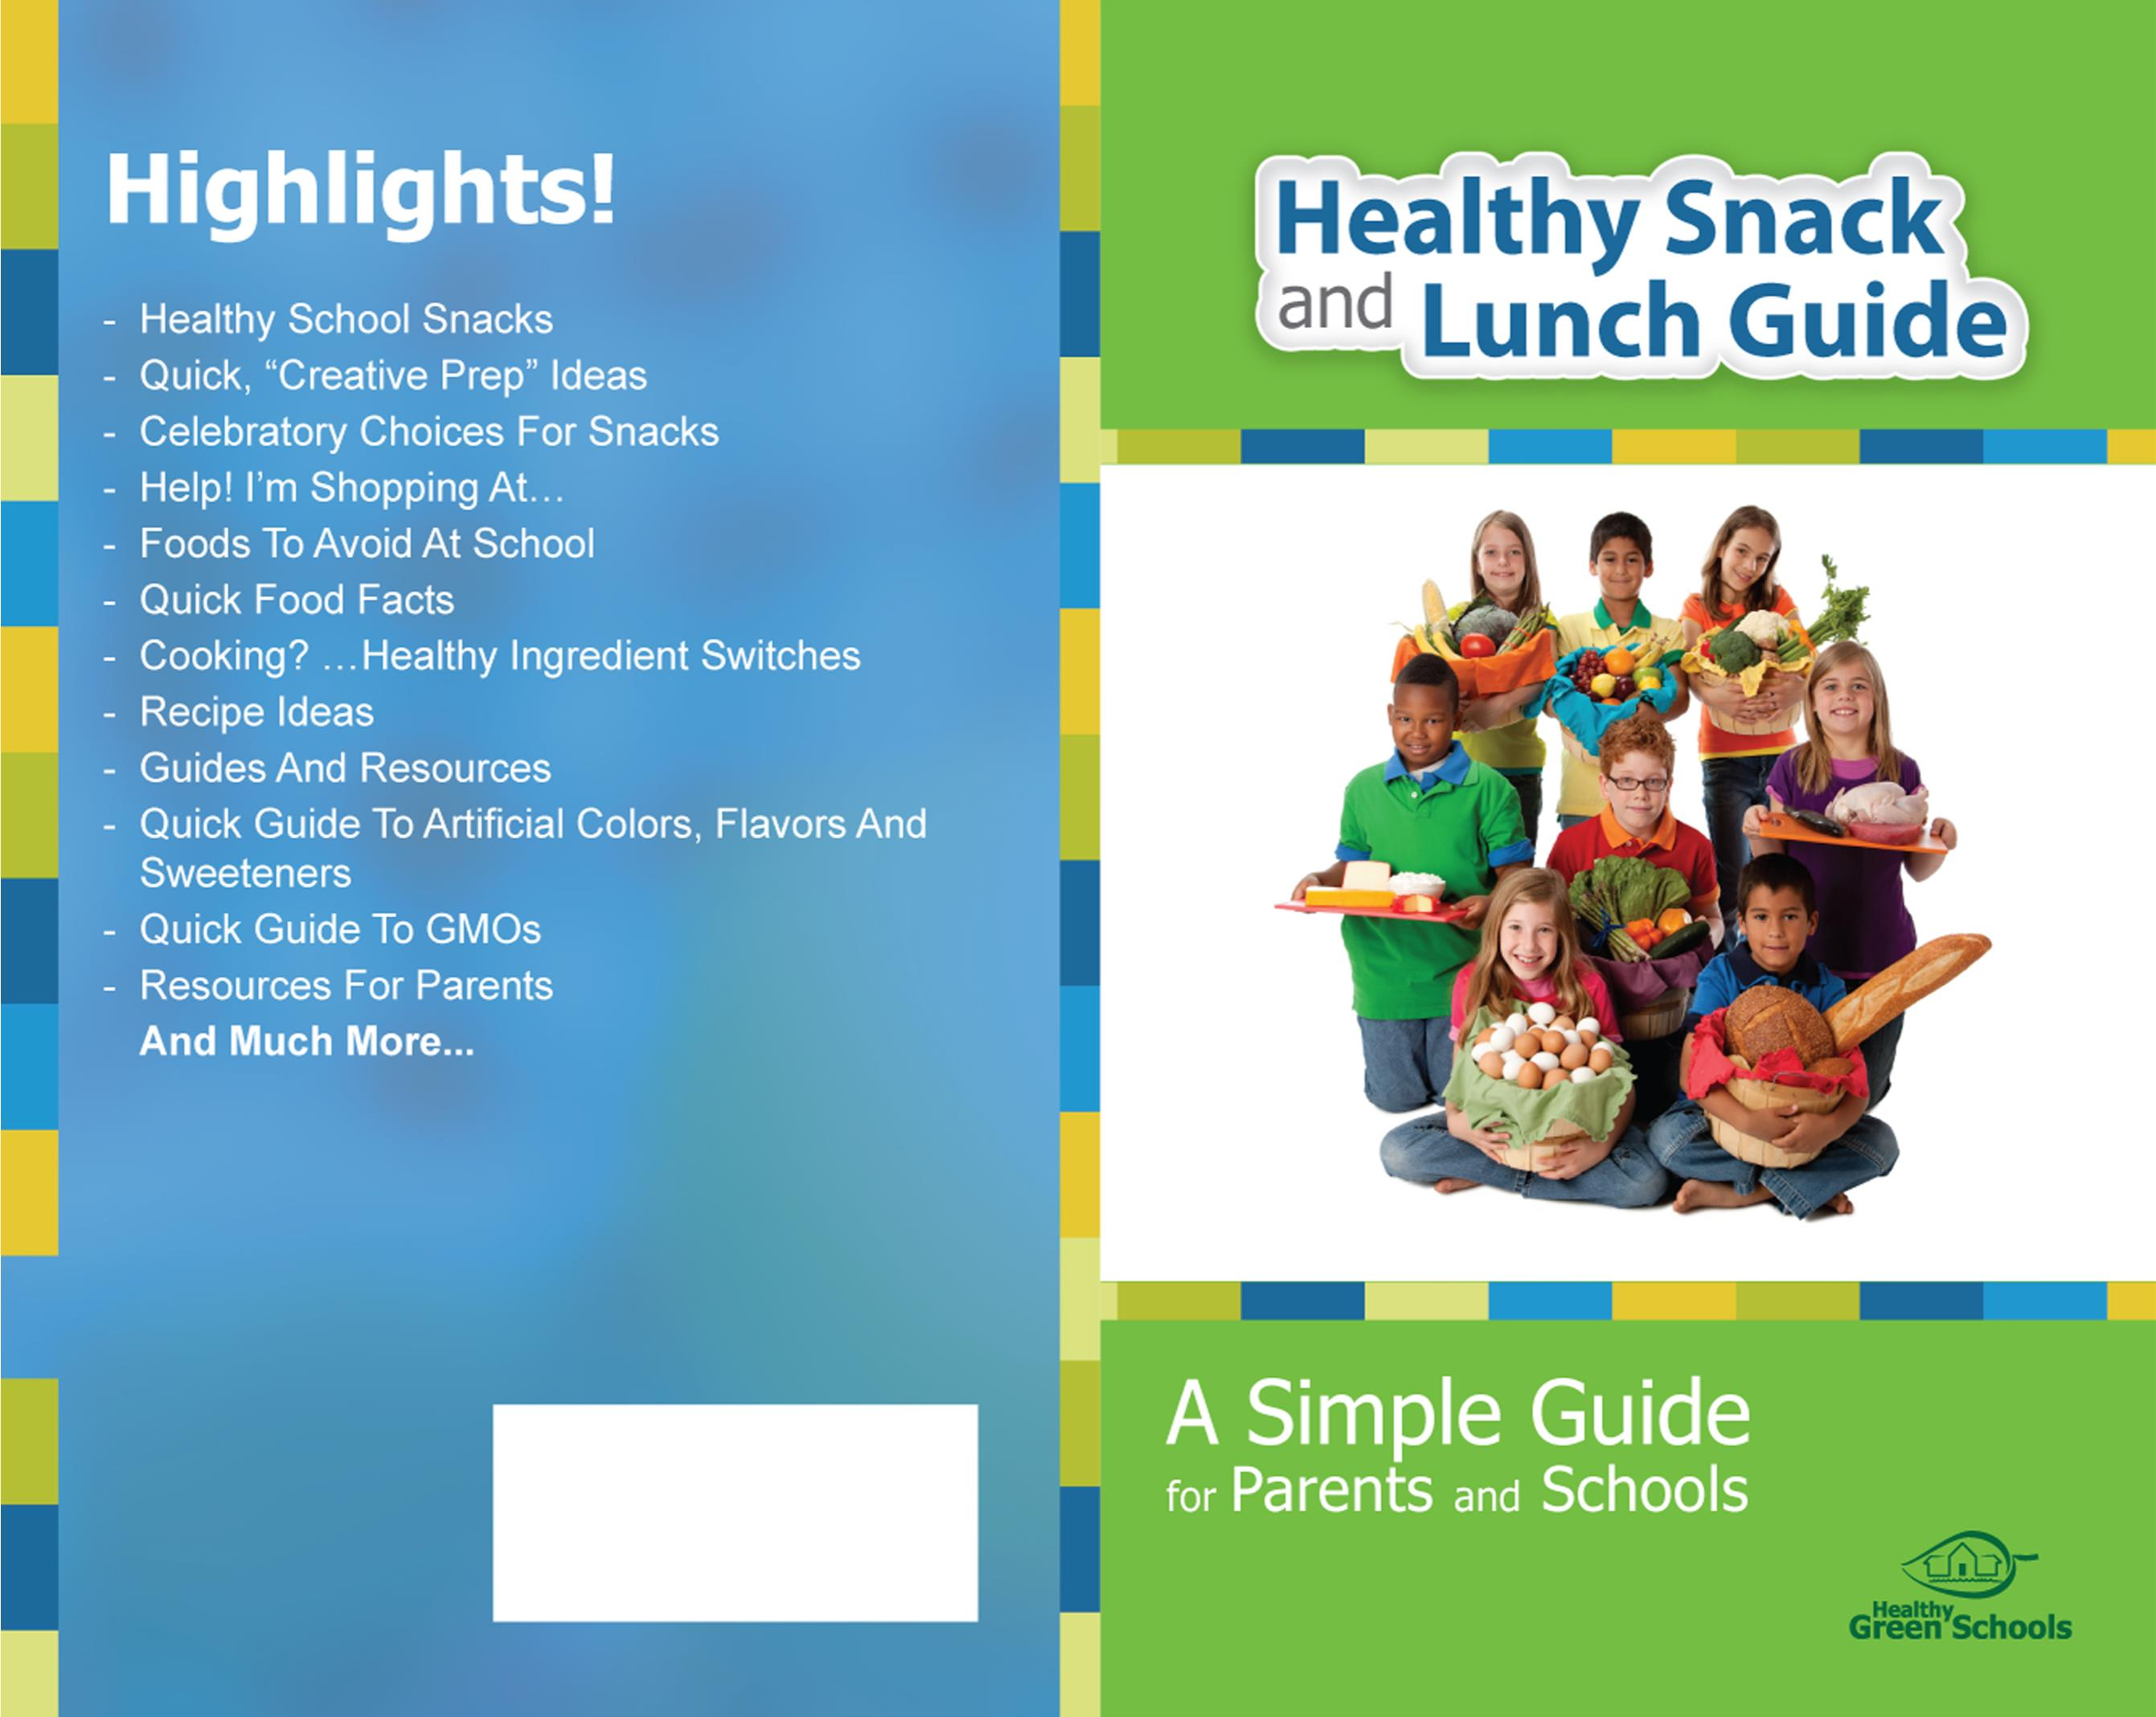 Healthy Food Guide cover image